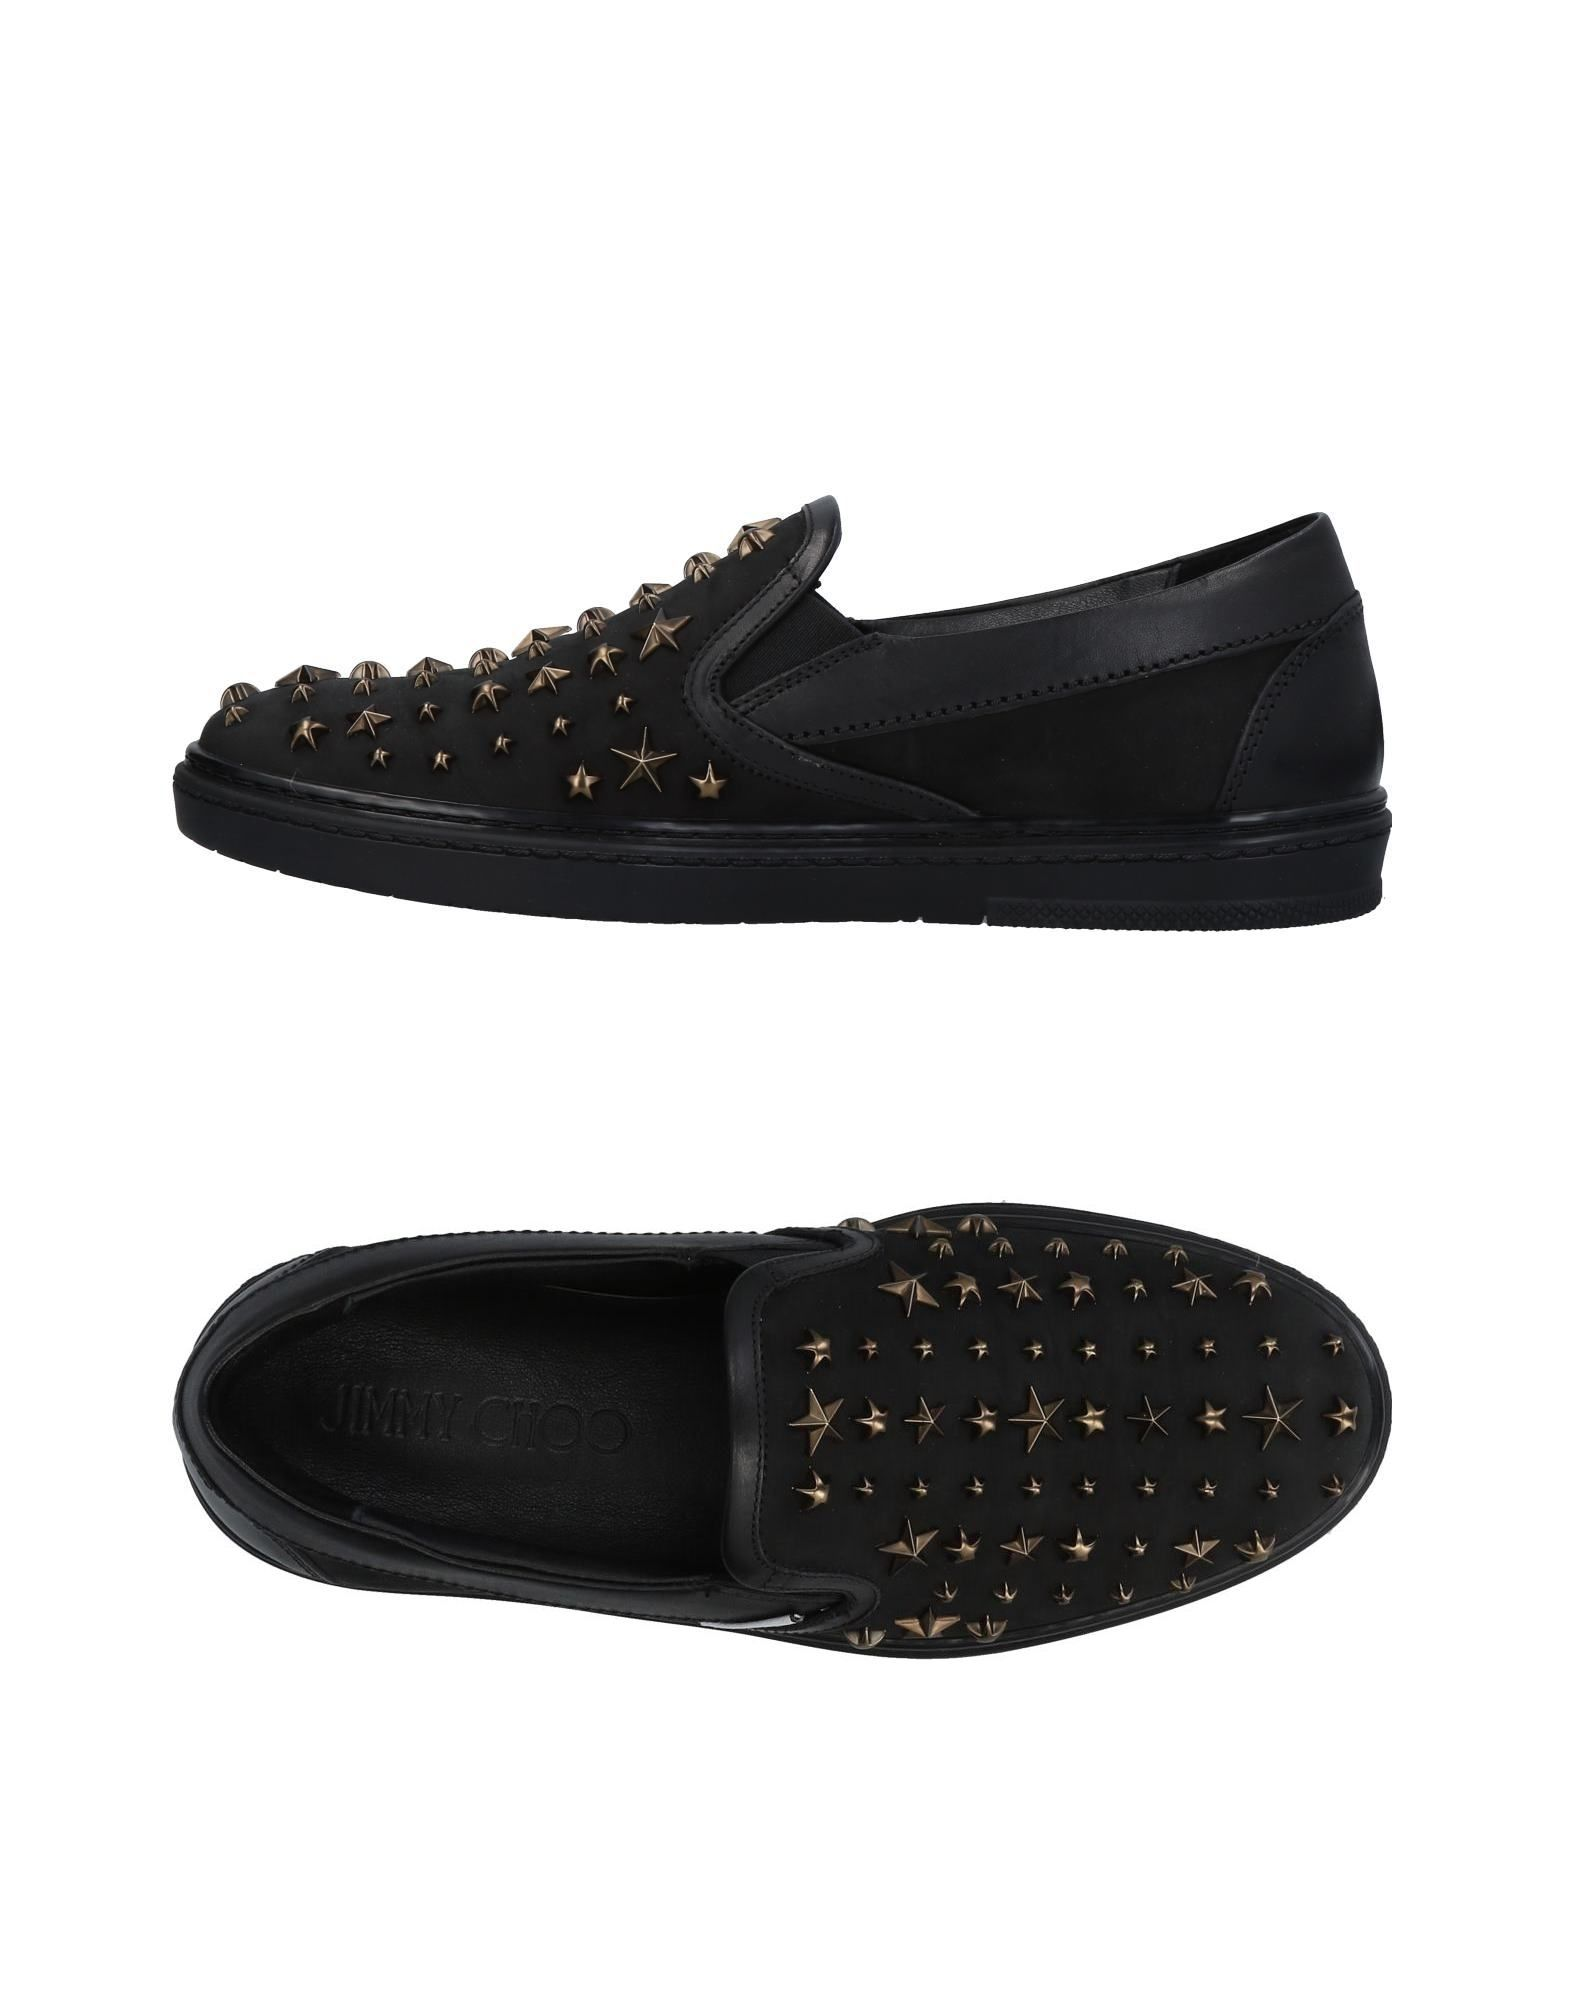 Sneakers Jimmy Choo Uomo - Acquista online su